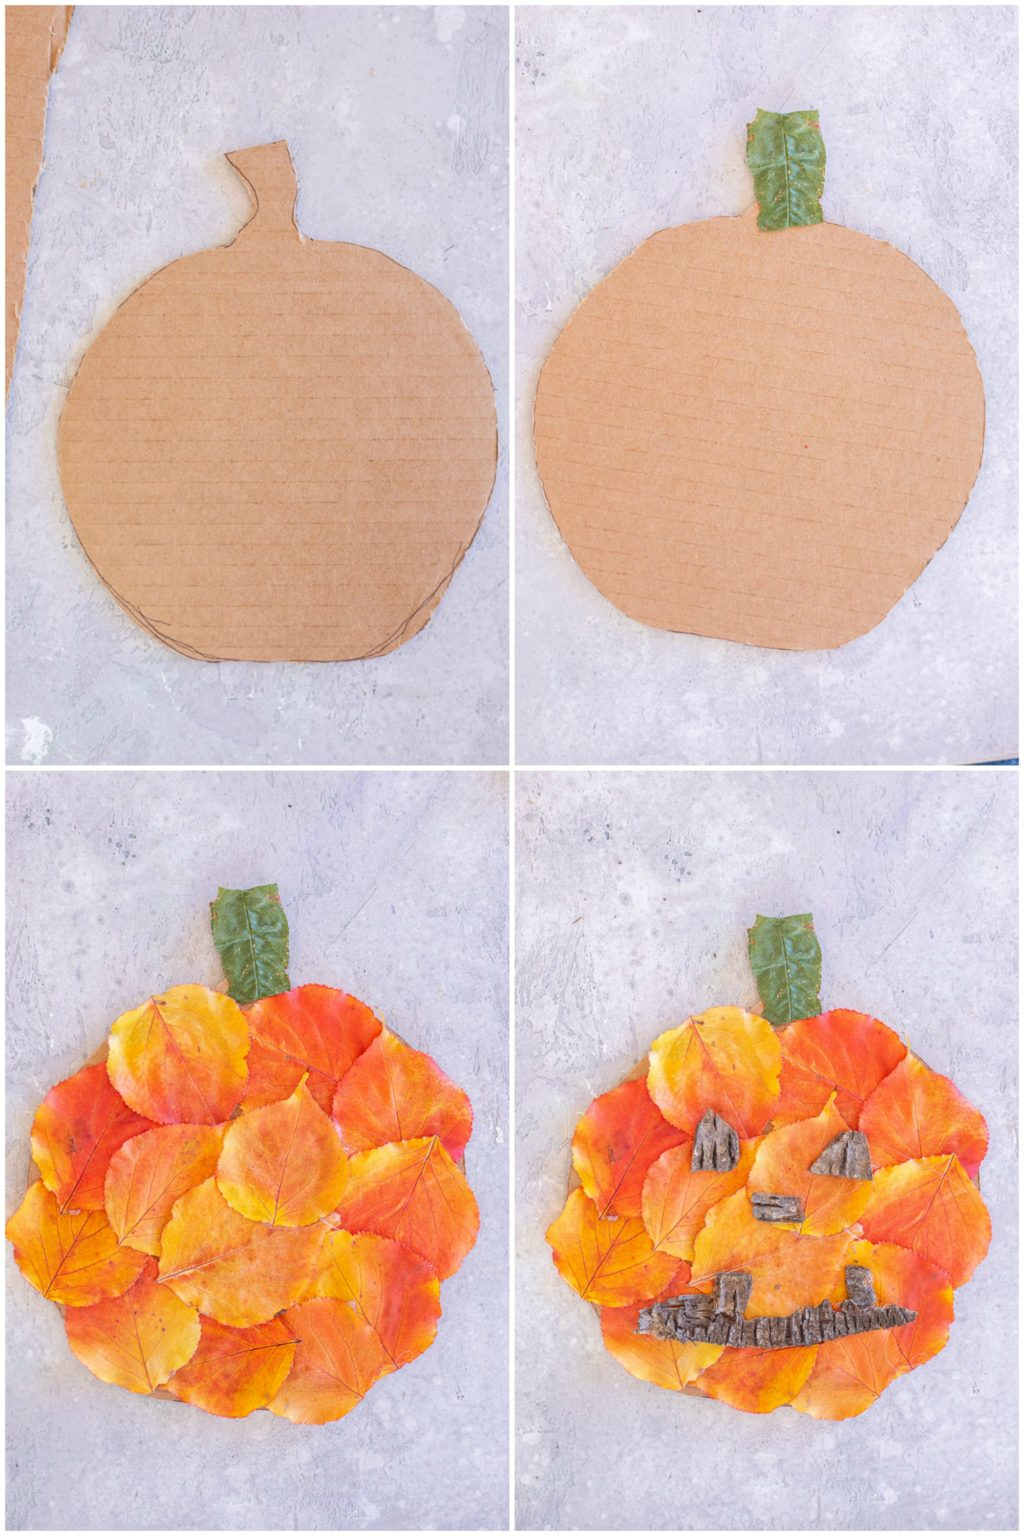 cutout cardboard pumpkins with fall leaves glued on them